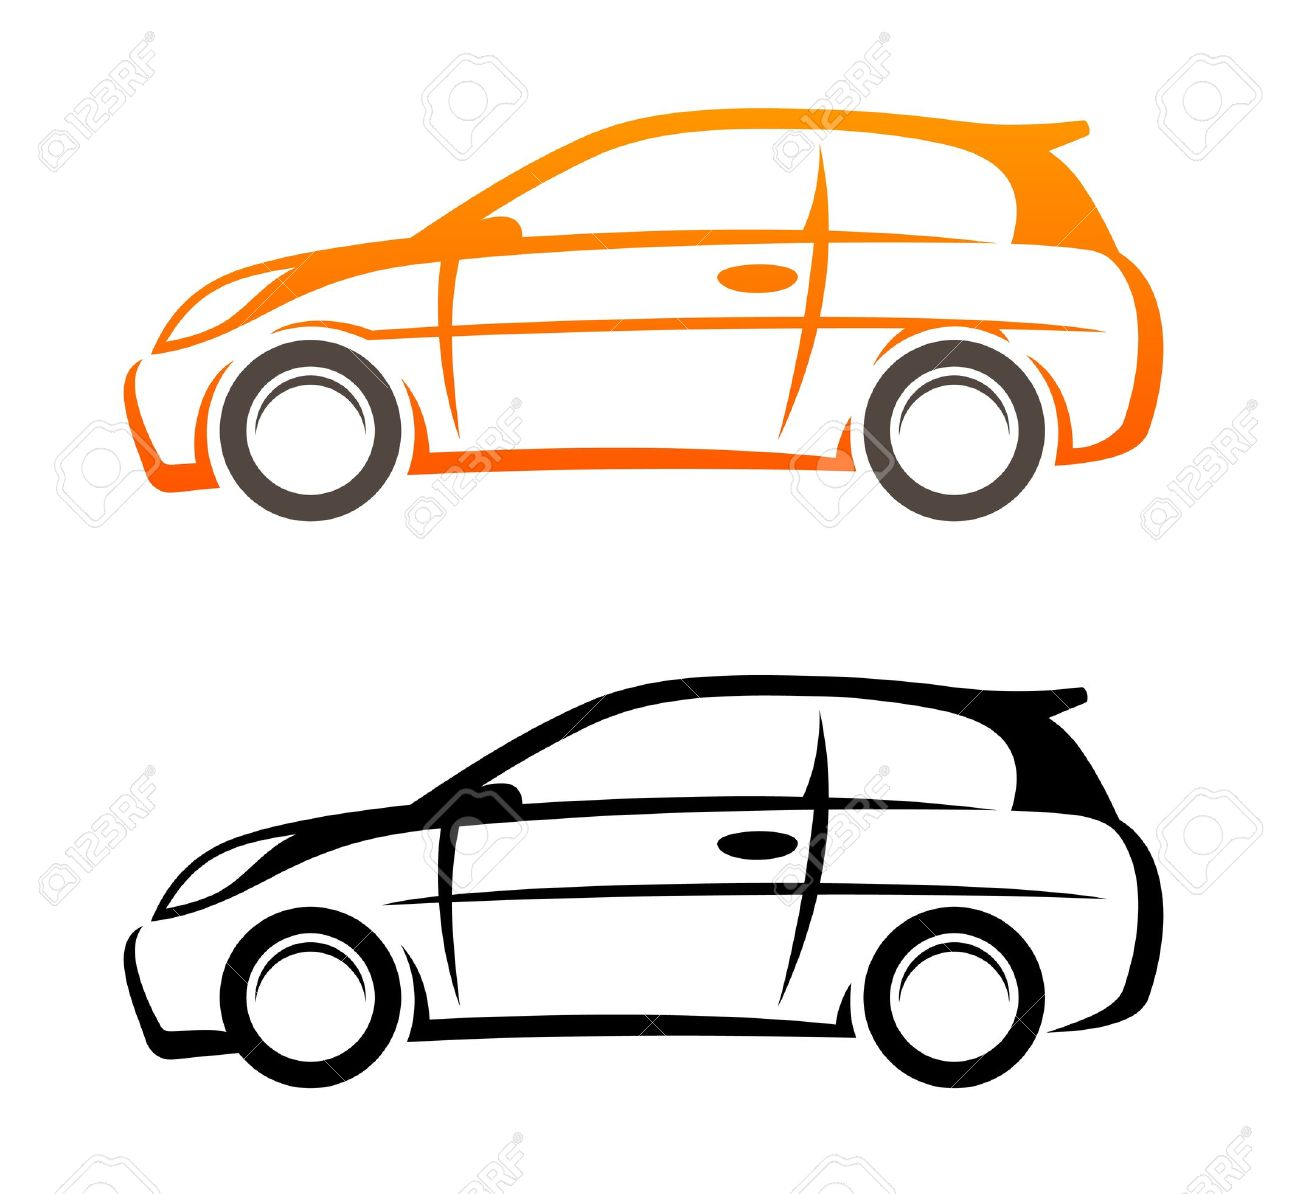 Car Sketch Royalty Free Cliparts, Vectors, And Stock Illustration ...